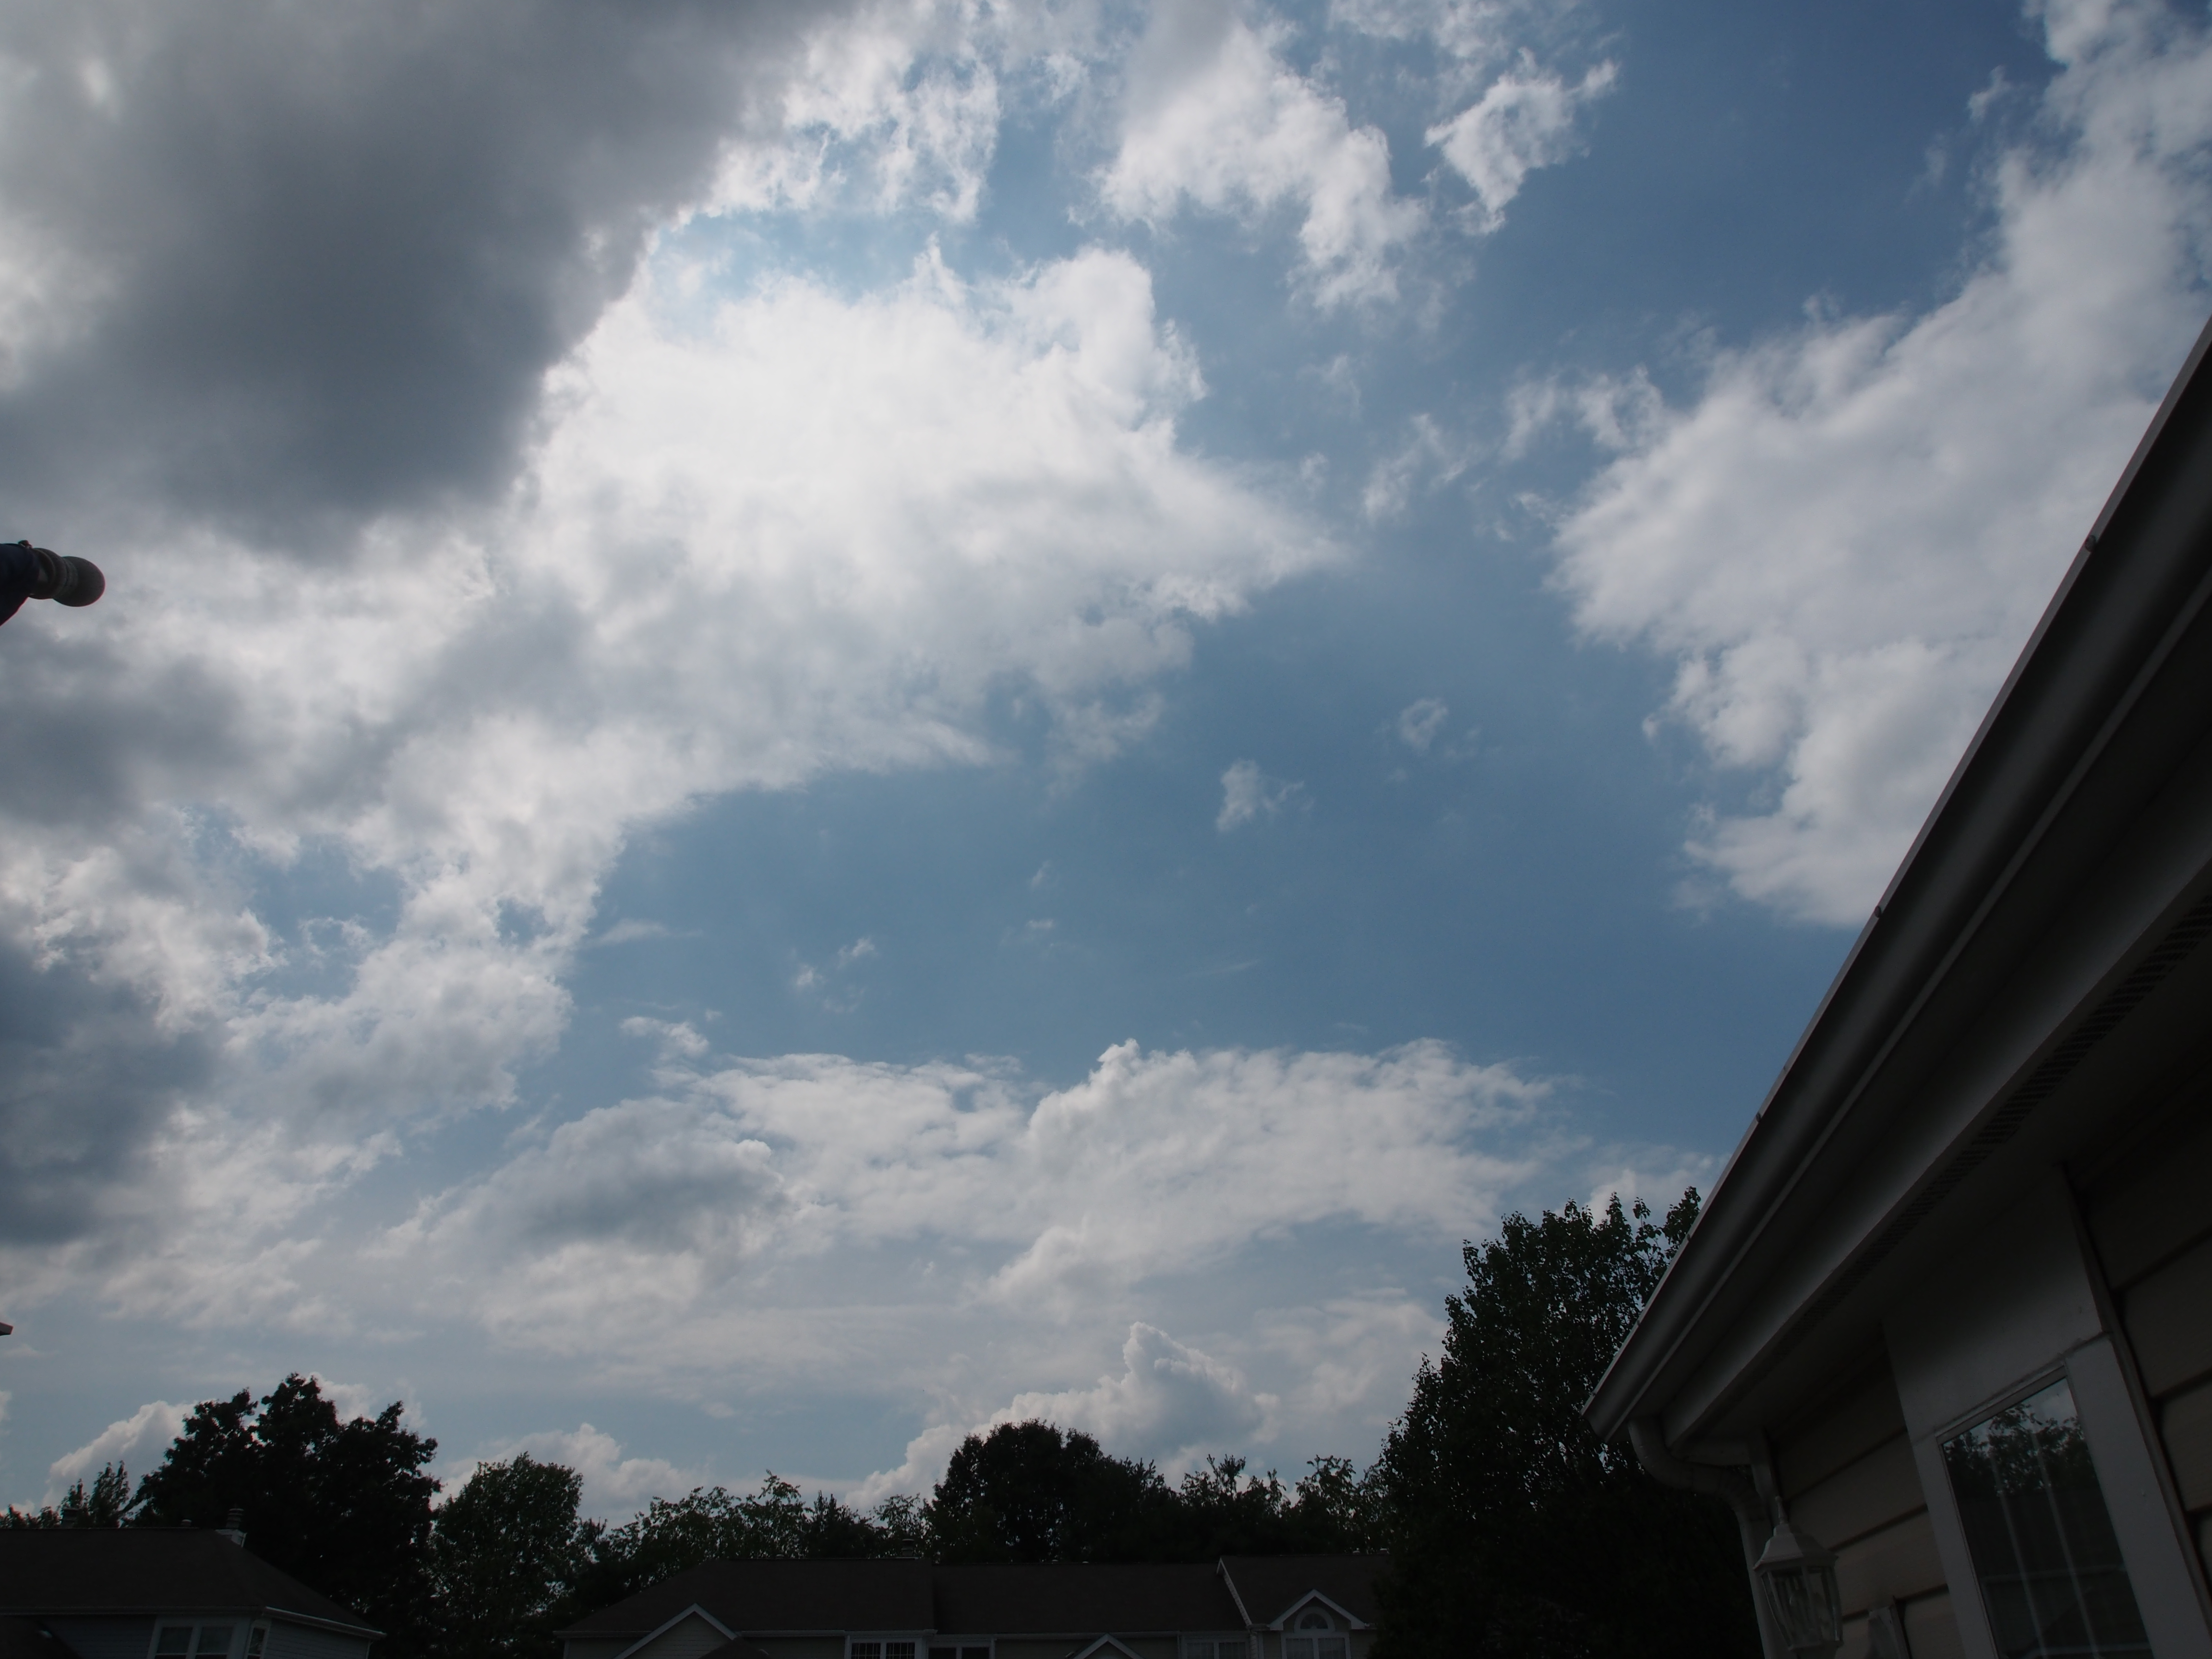 Picture with Polarized filter